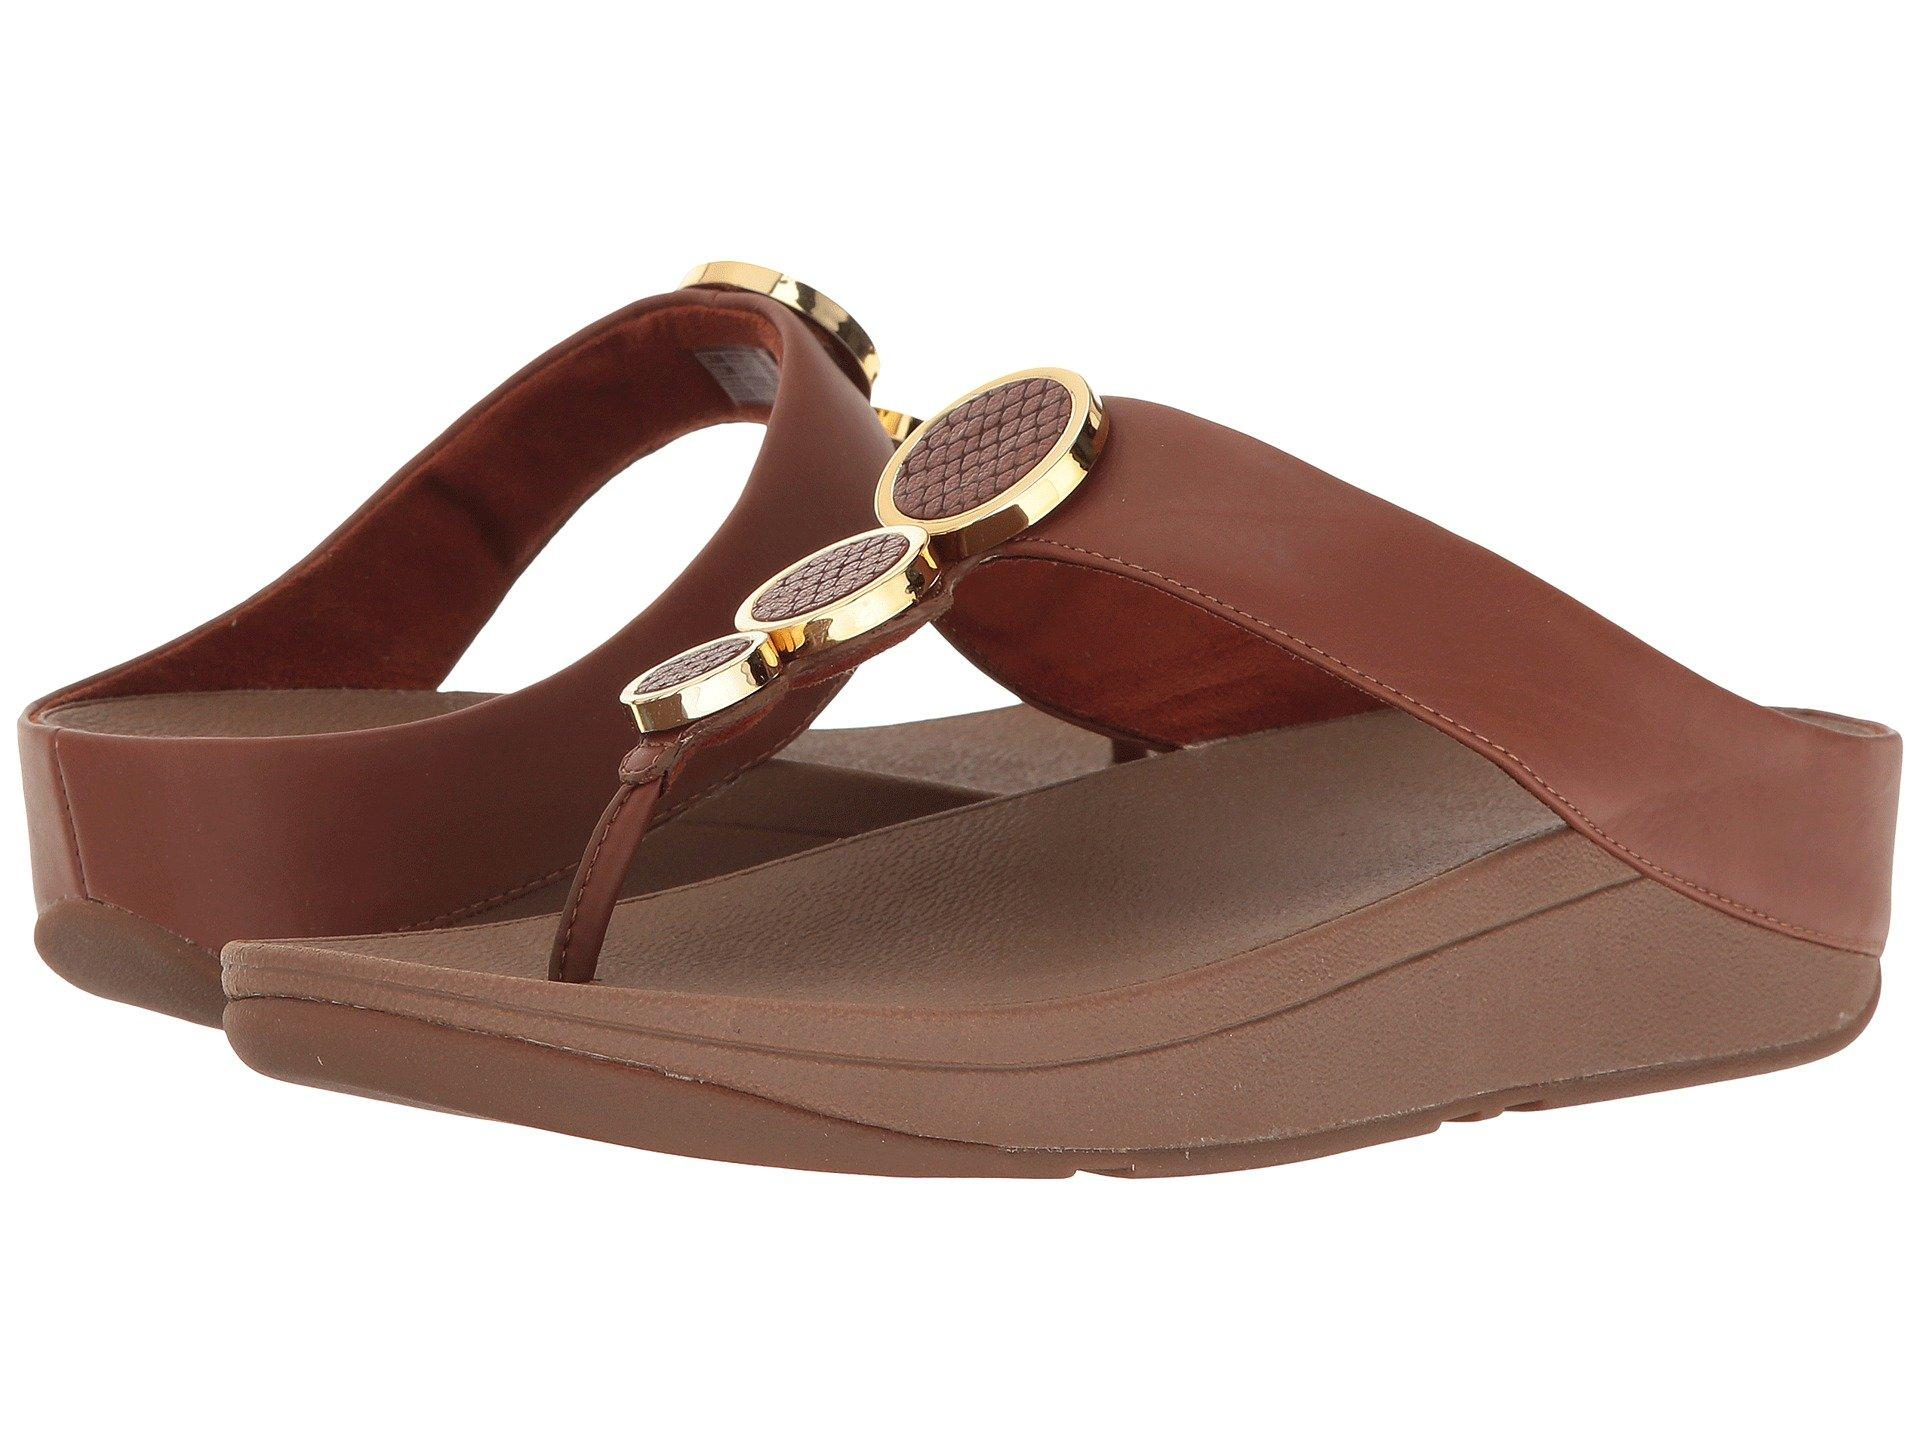 012e5d5f5 Fitflop Halo Toe Thong Sandals In Dark Tan